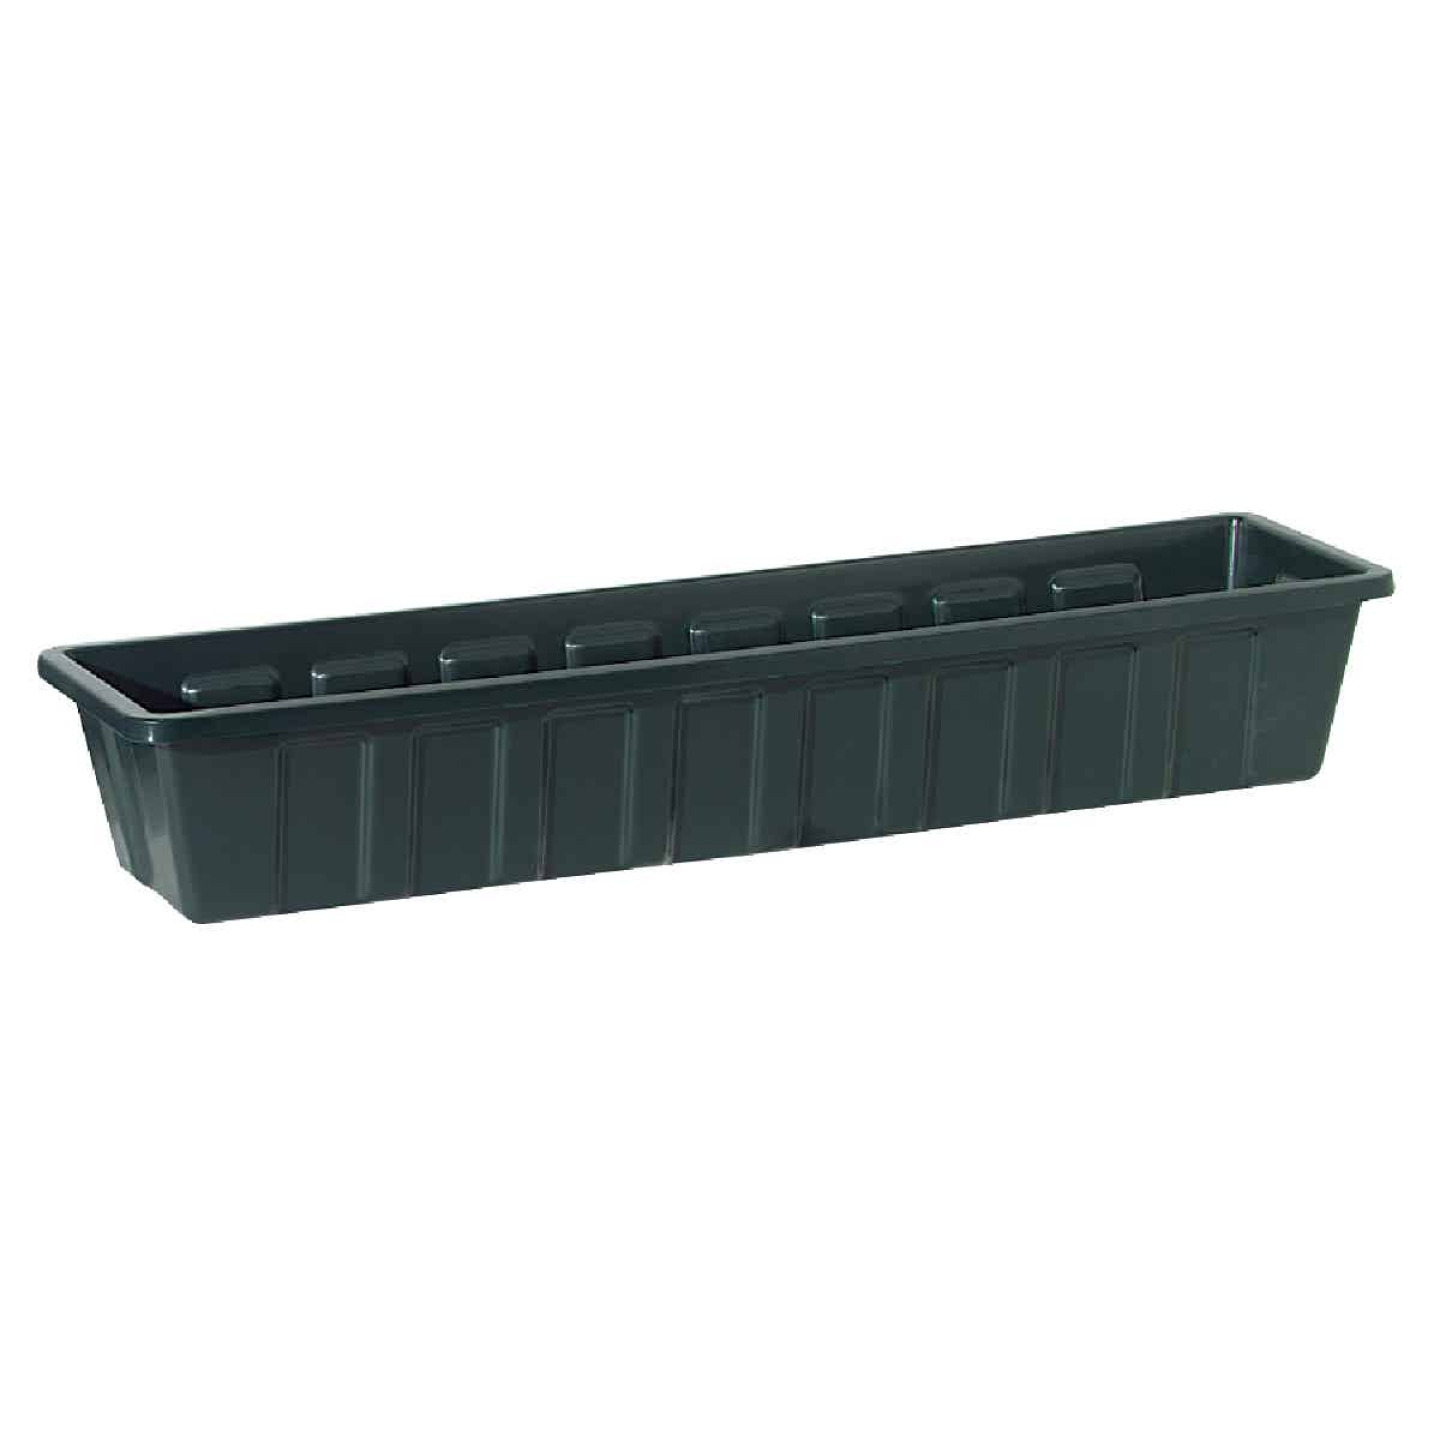 Novelty Poly-Pro 30 In. Polypropylene Hunter Green Flower Box Planter Image 1